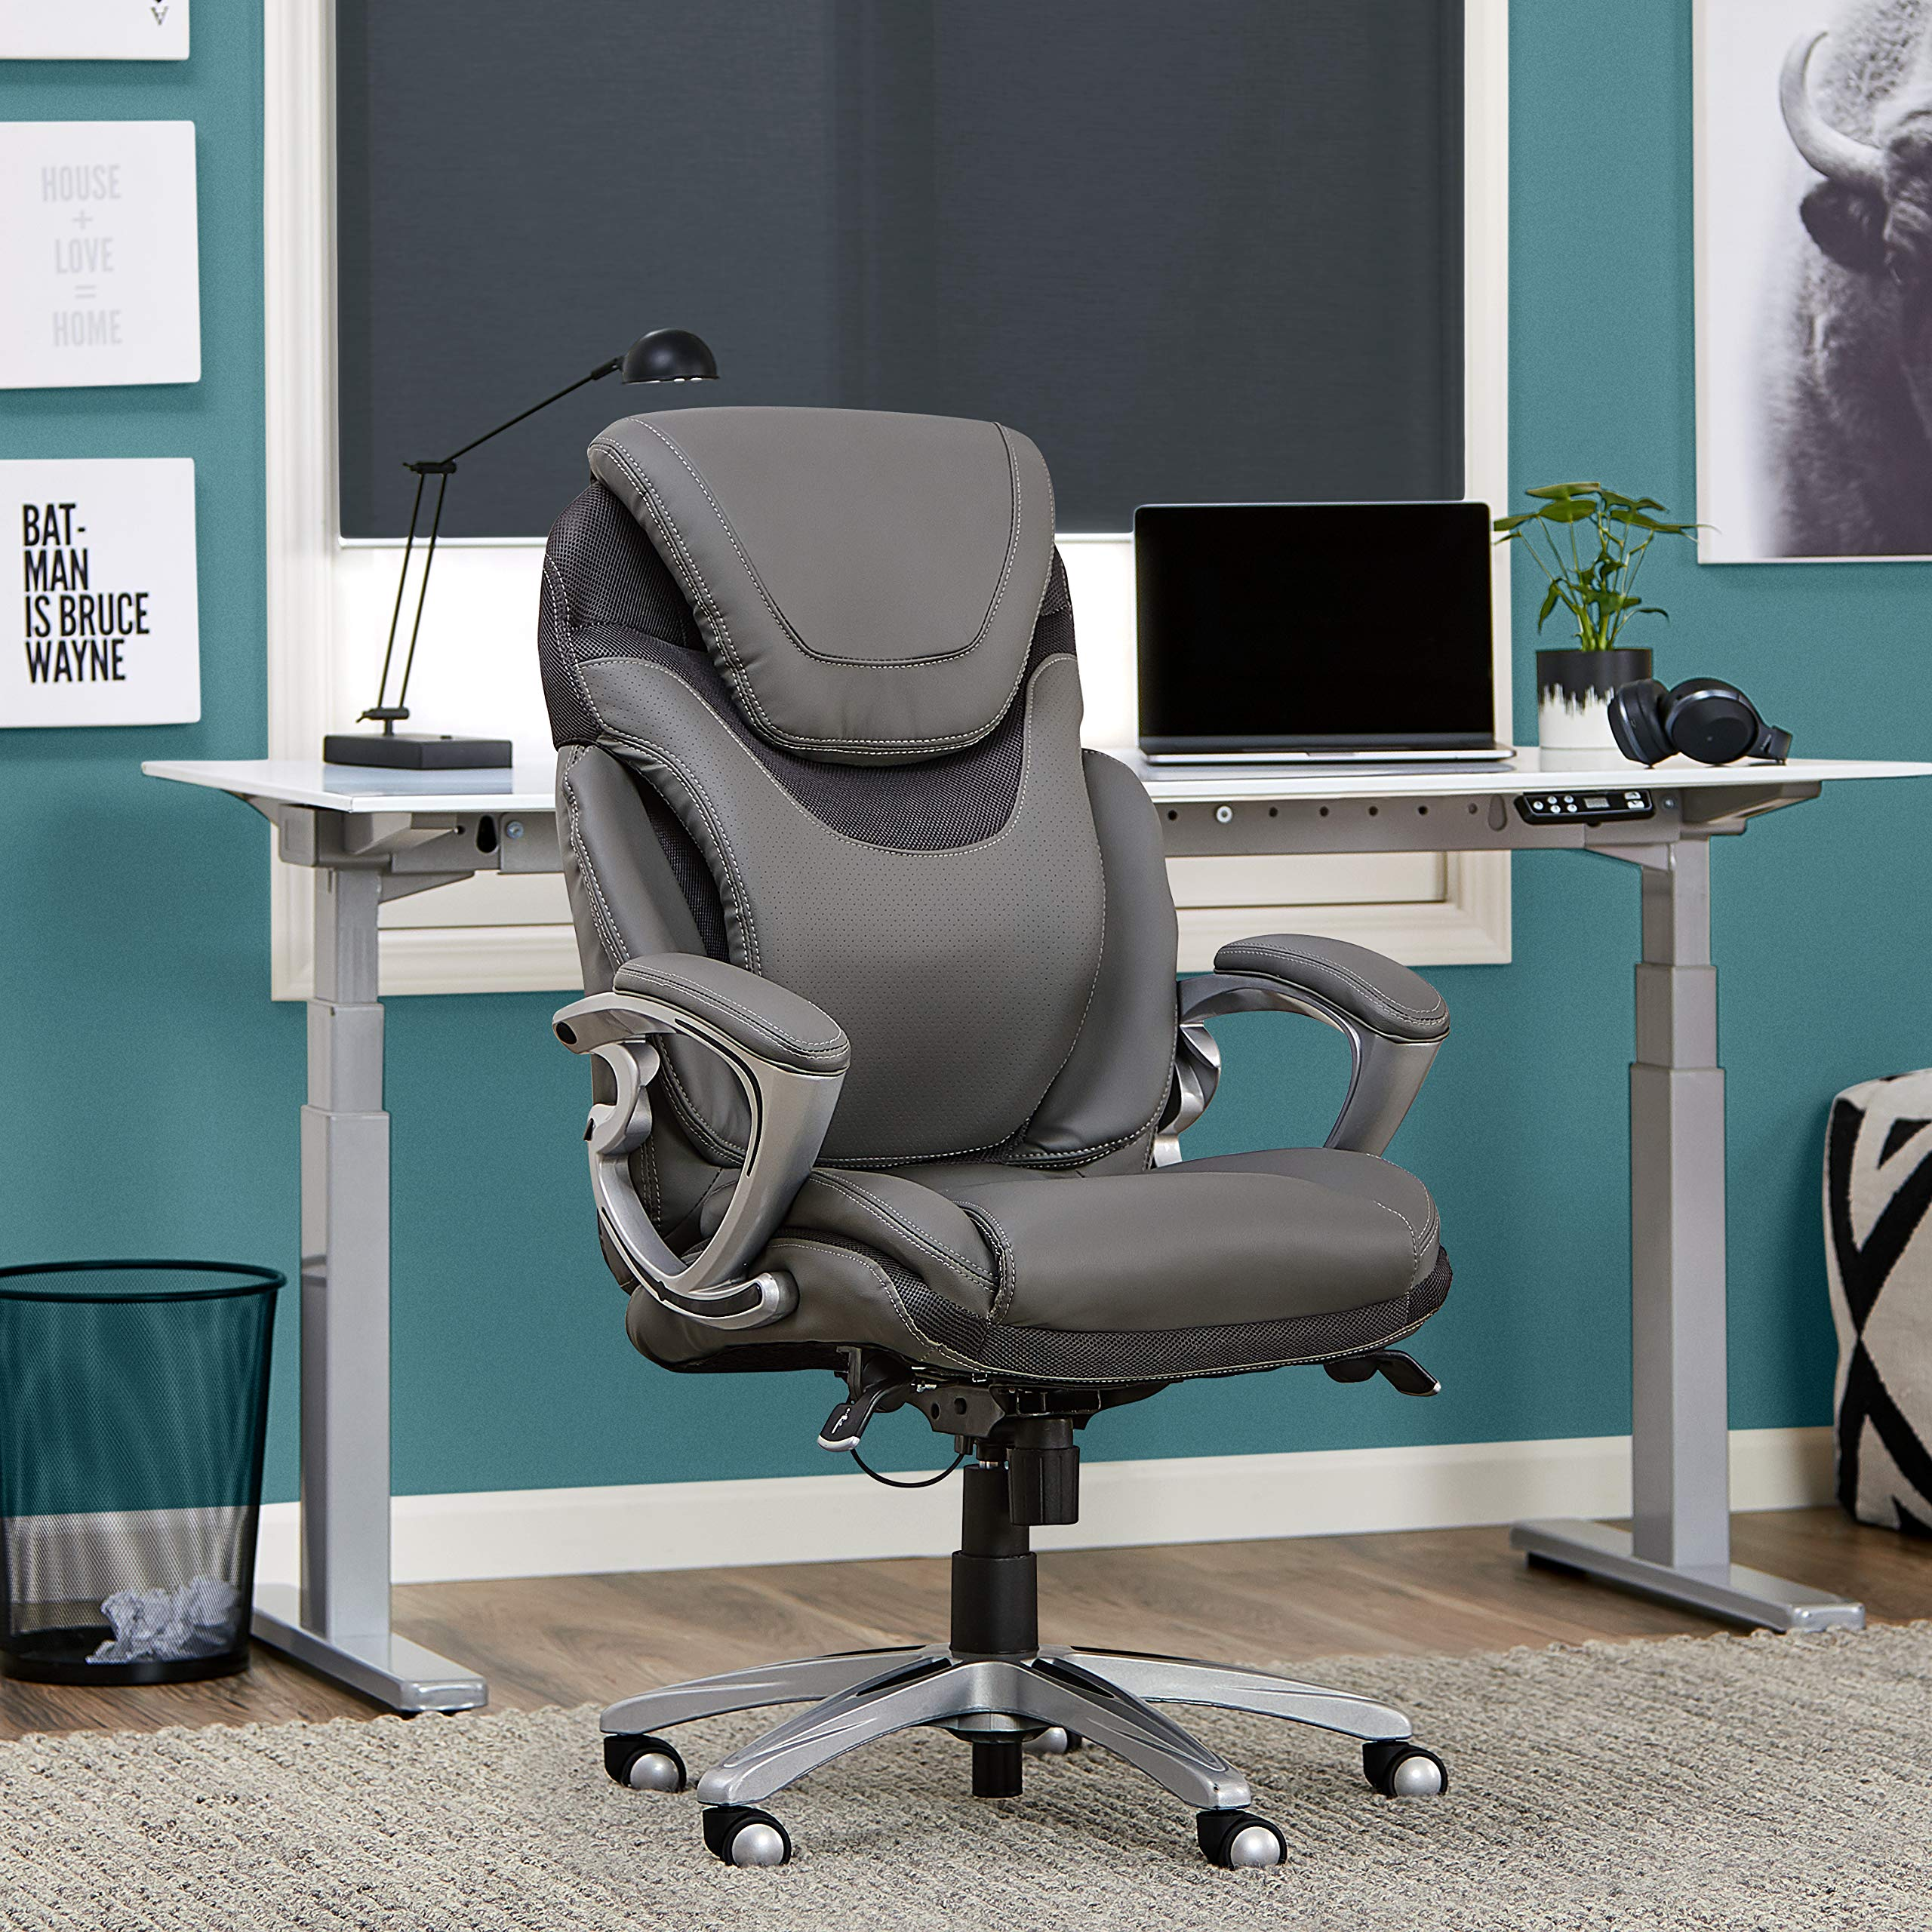 Serta 43807 Air Health and Wellness Executive Office Chair, Light Grey, Gray by Serta